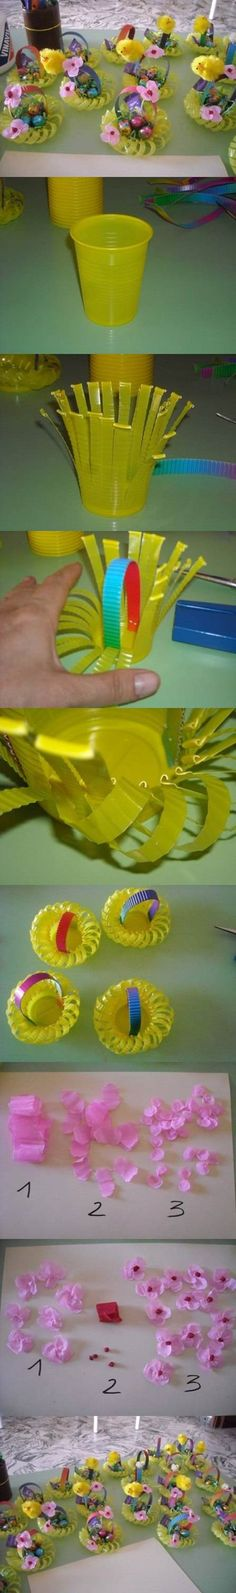 DIY Plastic Cup Easter Basket | iCreativeIdeas.com Like Us on Facebook ==> https://www.facebook.com/icreativeideas